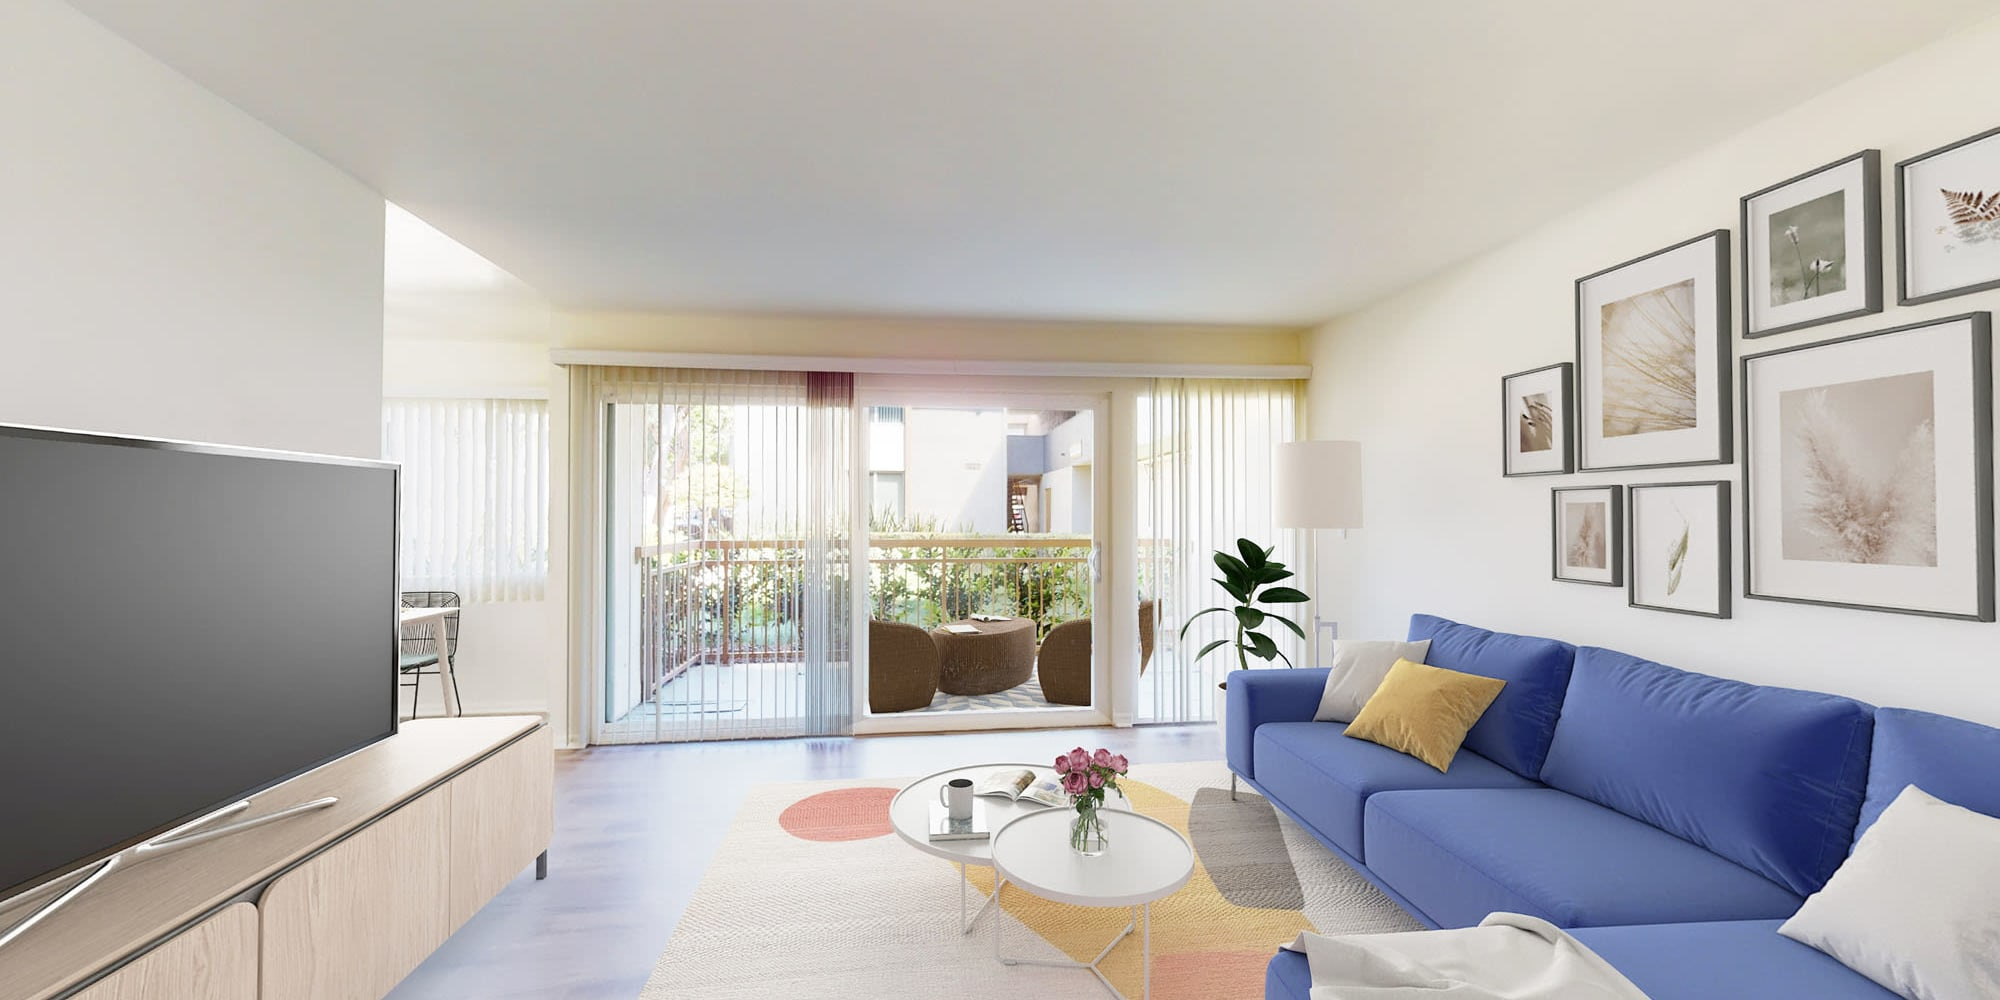 Well-decorated living space in a model two bedroom apartment at West Park Village in Los Angeles, California